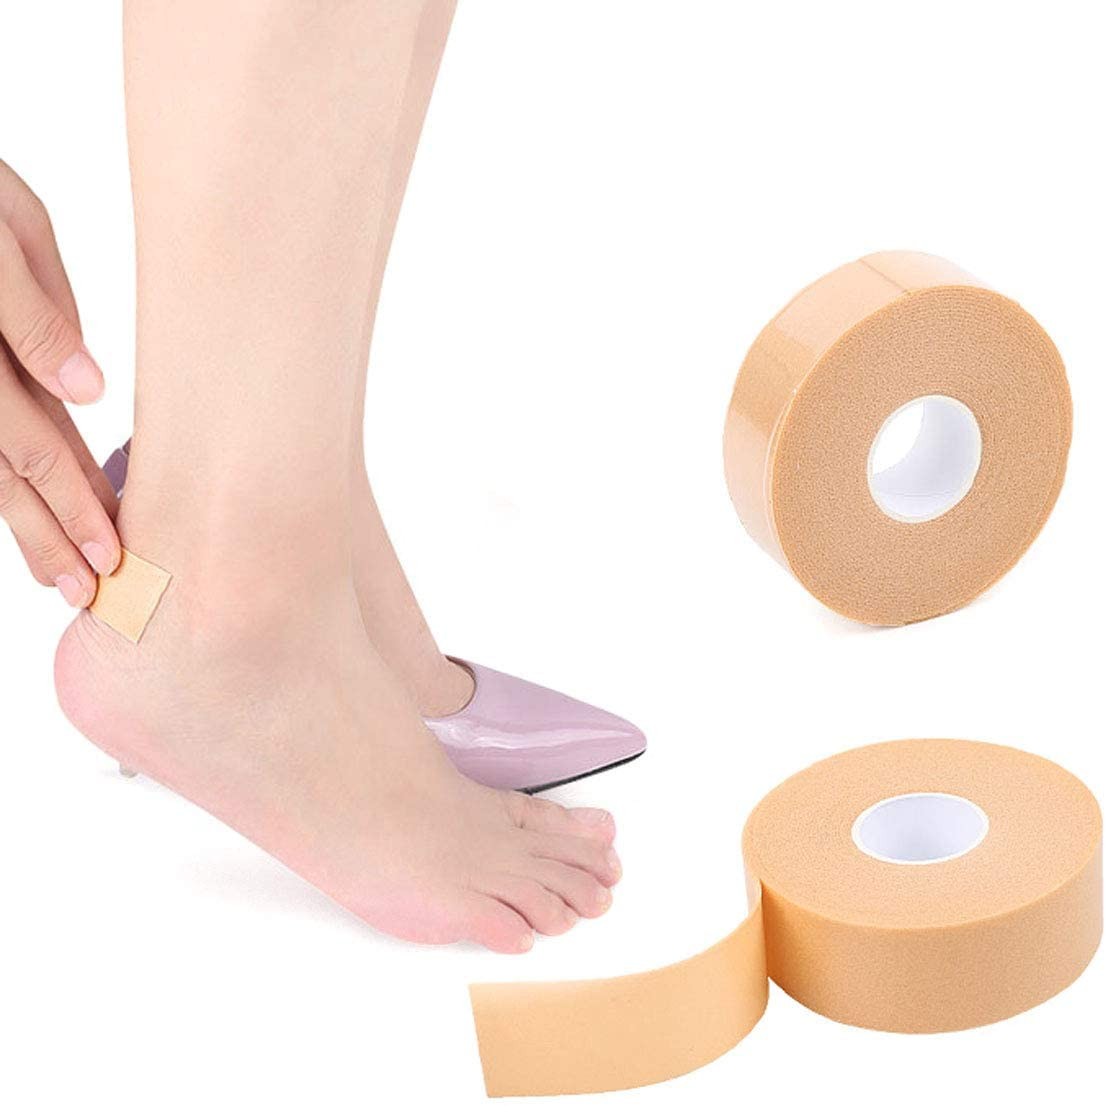 2 Roll Moleskin Self-Adhesive Blister Pads Foot Care Sticker - Anti-Slip Waterproof Multi-Purpose High-Heeled Foam Tape Adhesive Protection Shoes Insoles for Prevention and Healing